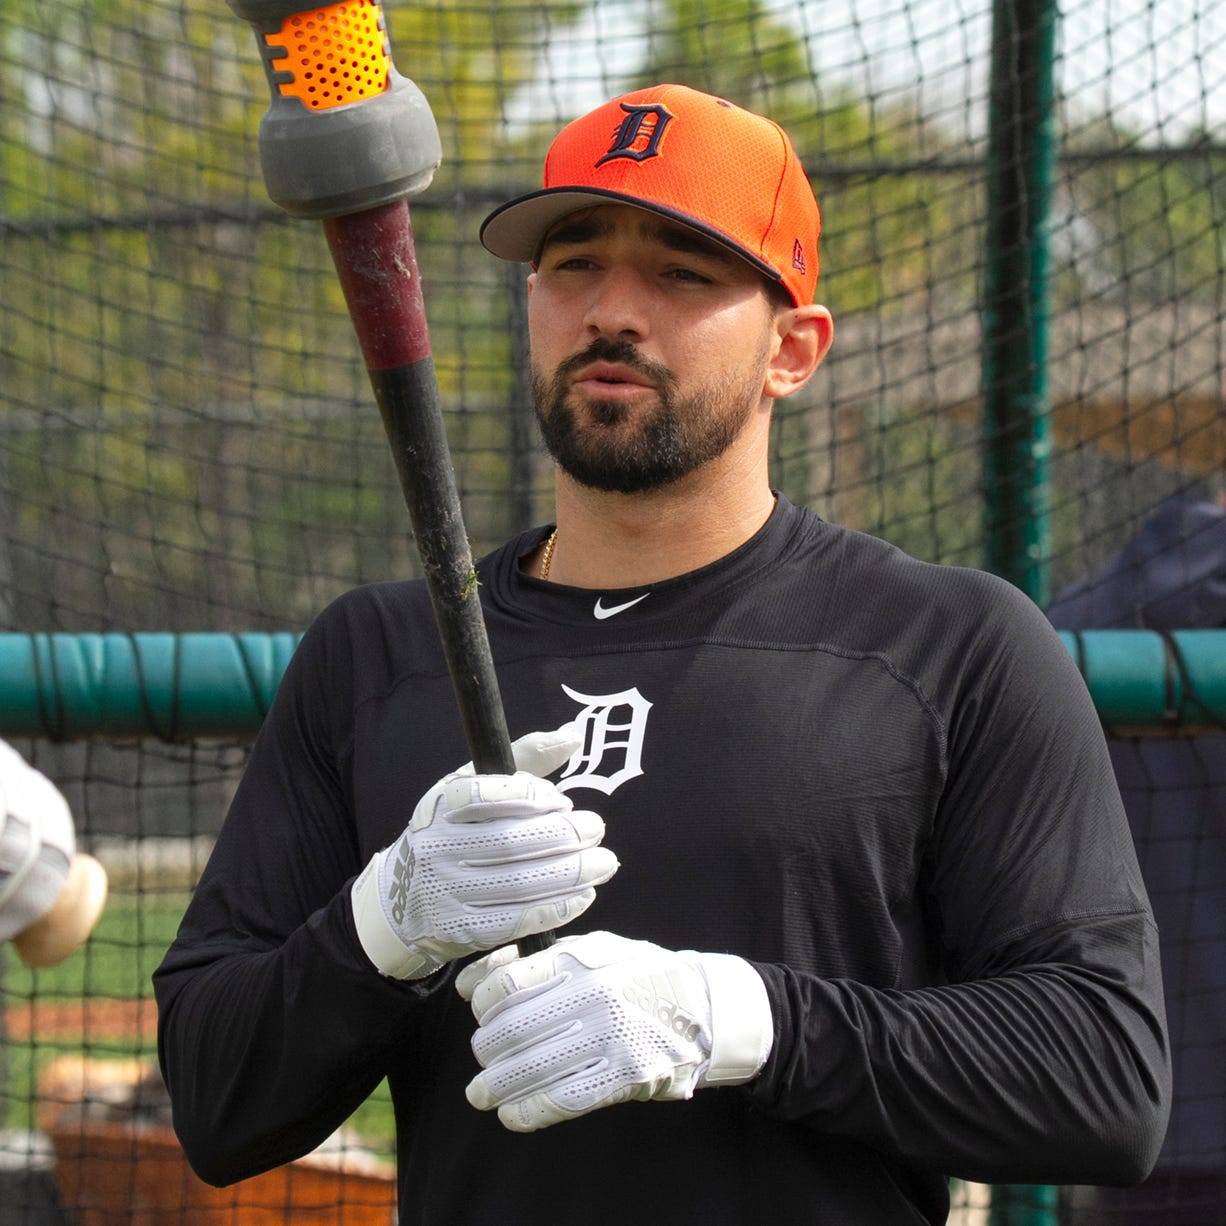 Castellanos, OK after being hit by pitch, open to extension talks with Tigers